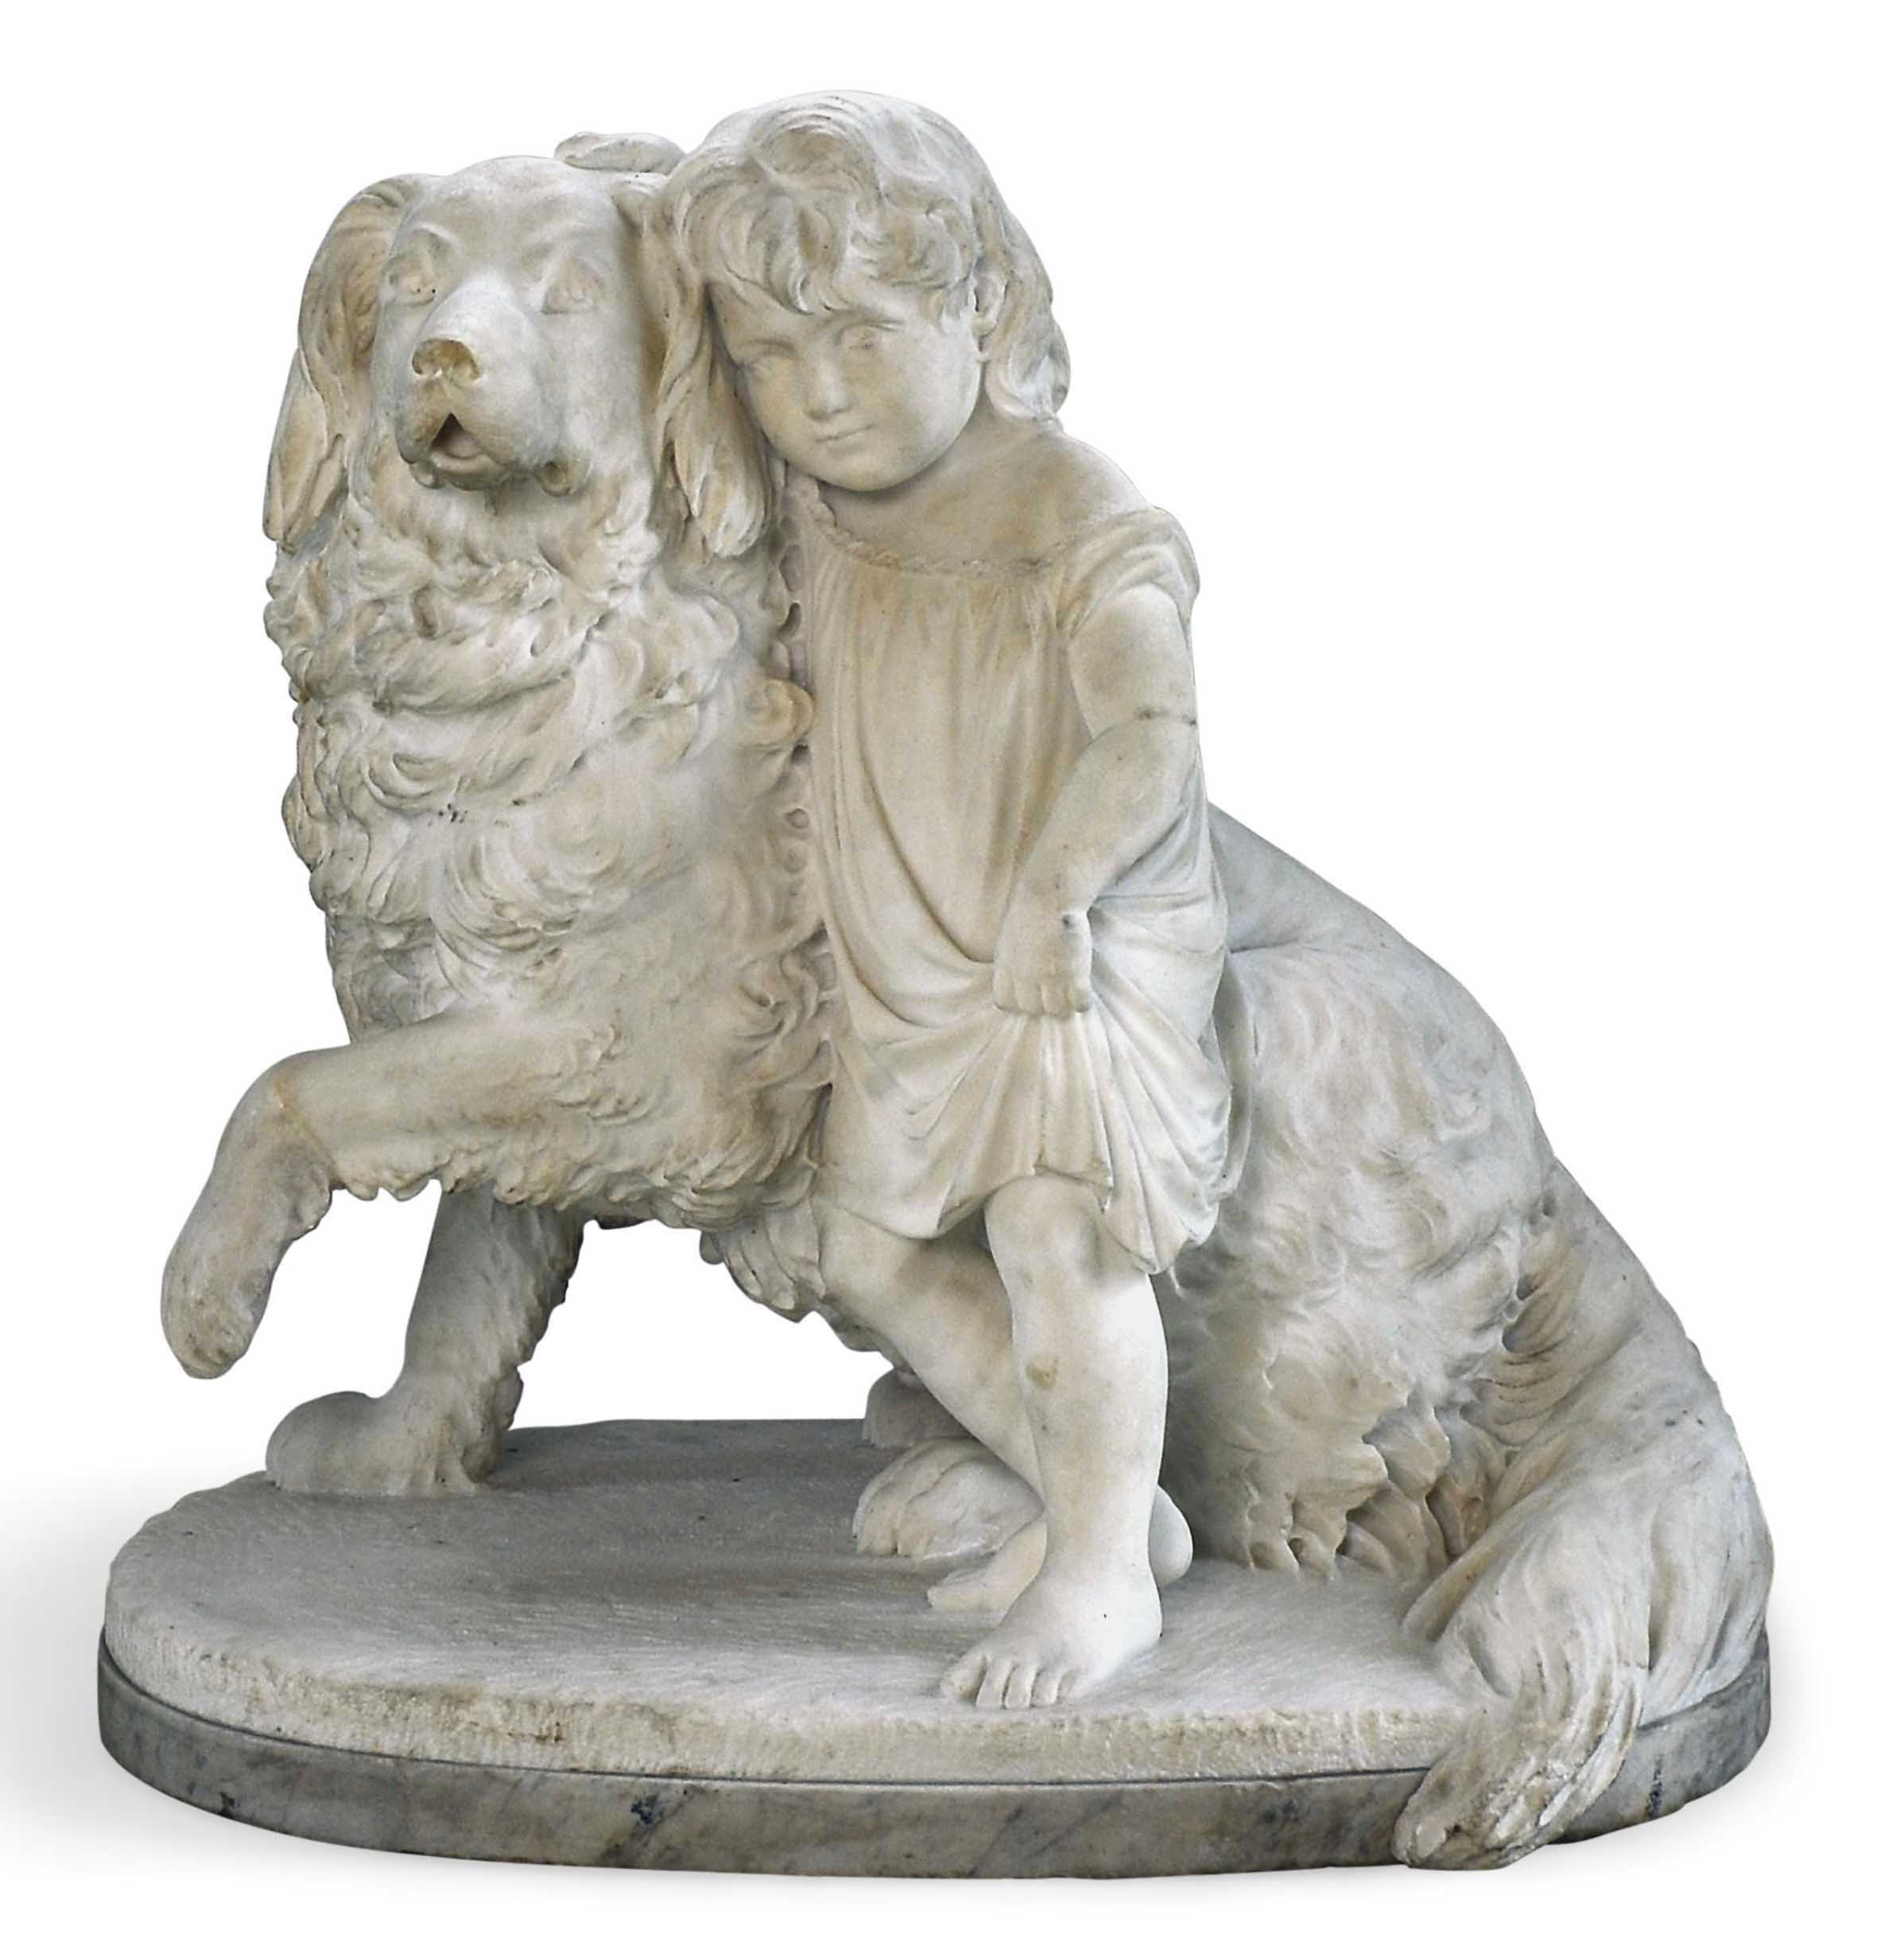 AN ENGLISH MARBLE GROUP OF A YOUNG GIRL WITH A GOLDEN RETRIEVER